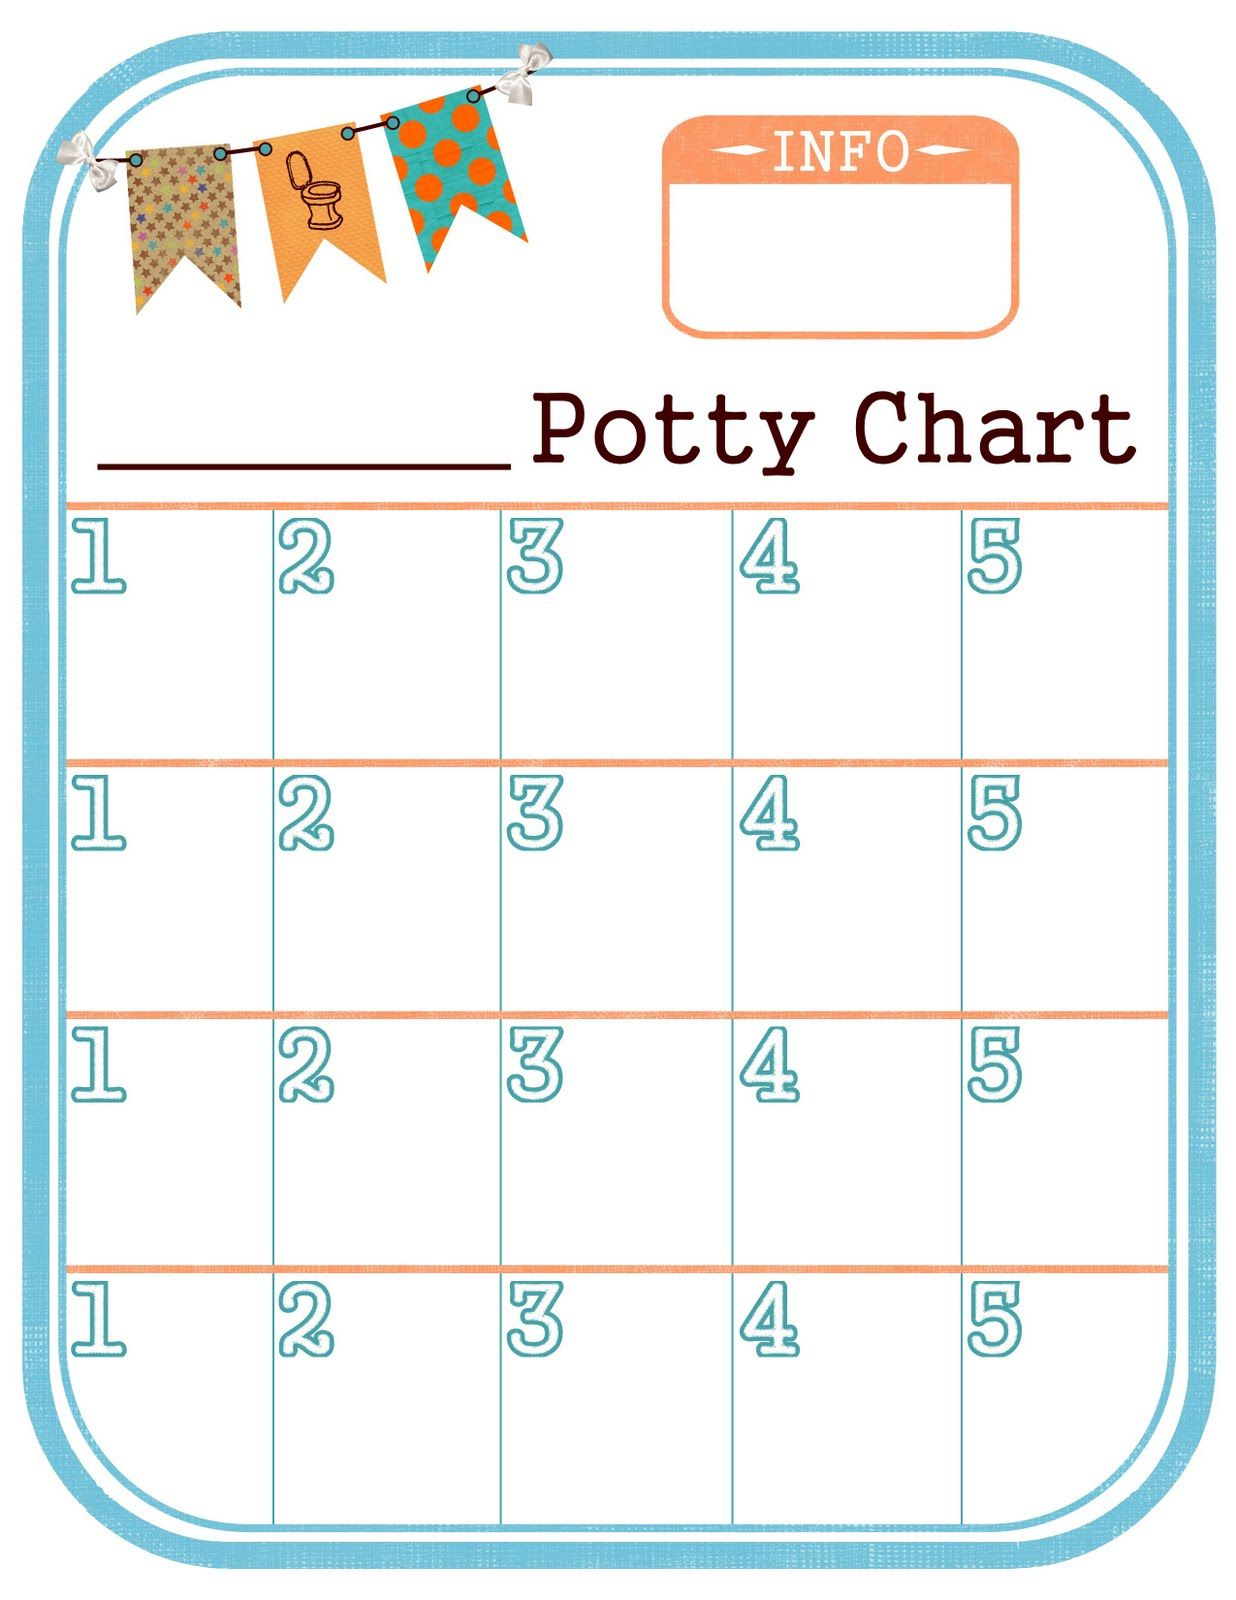 This potty chart is so cute printing it out right now for ezra